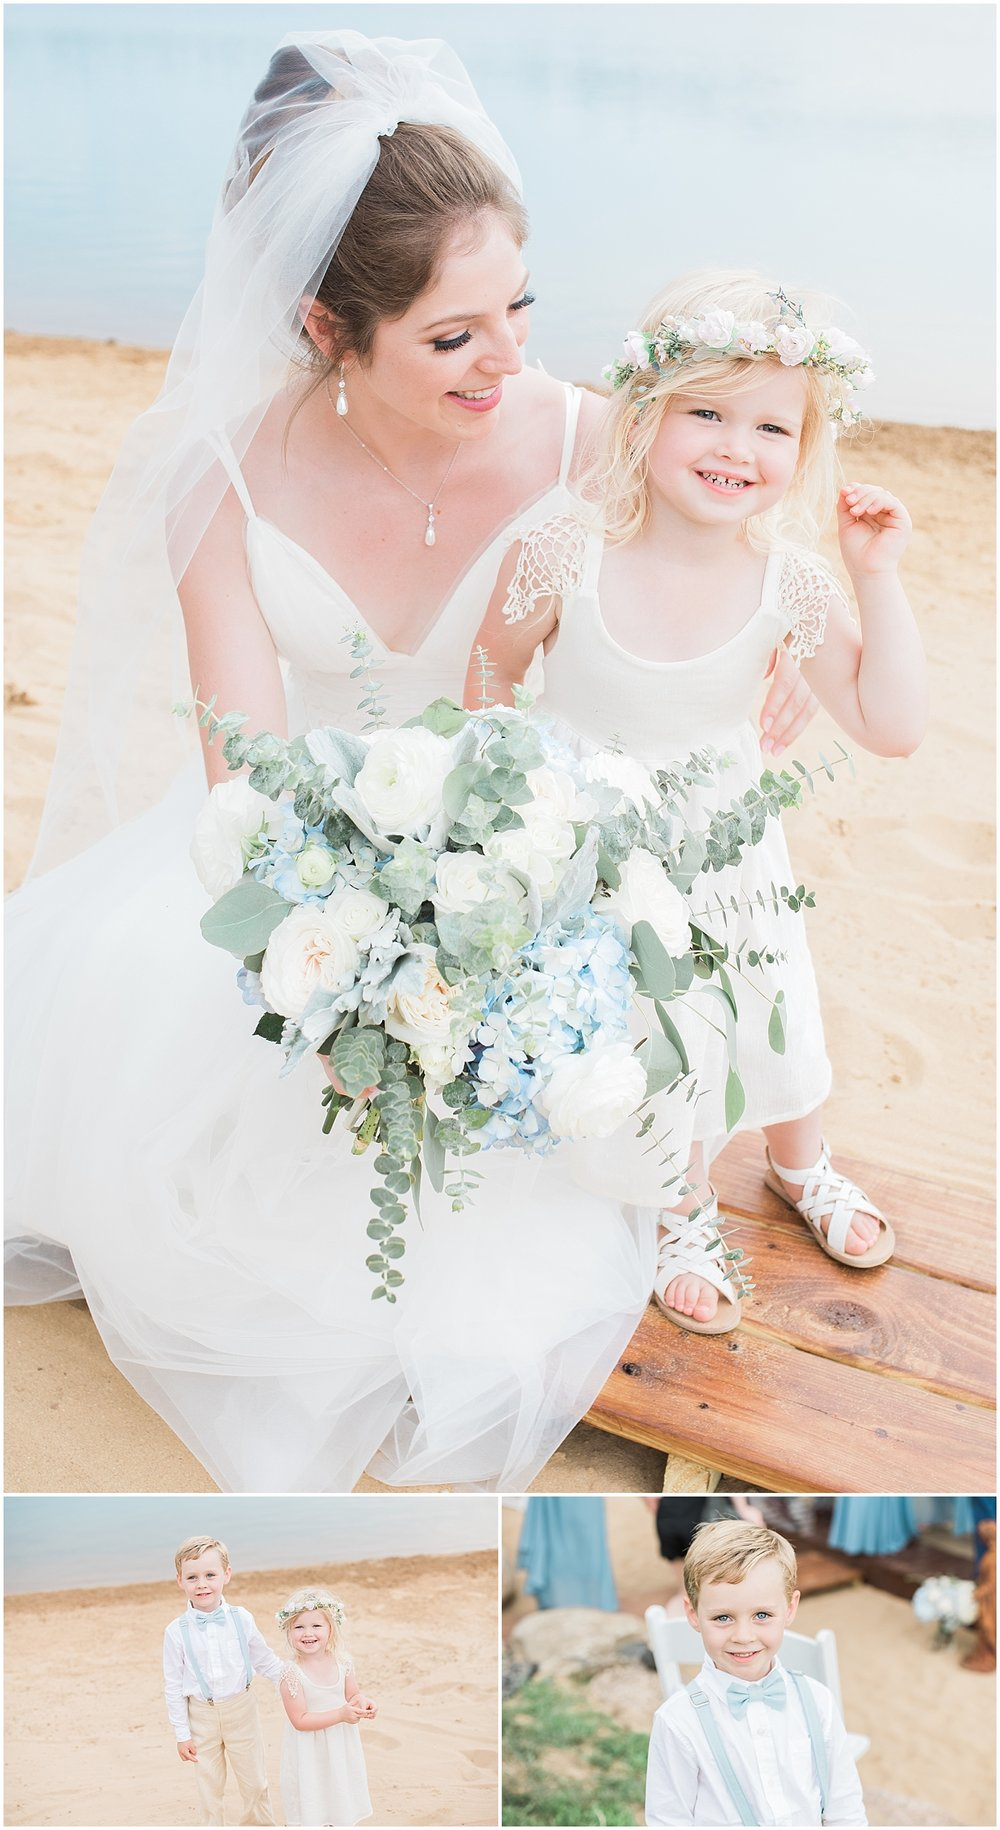 Bride with flowers girl by Alyssa Parker Photography